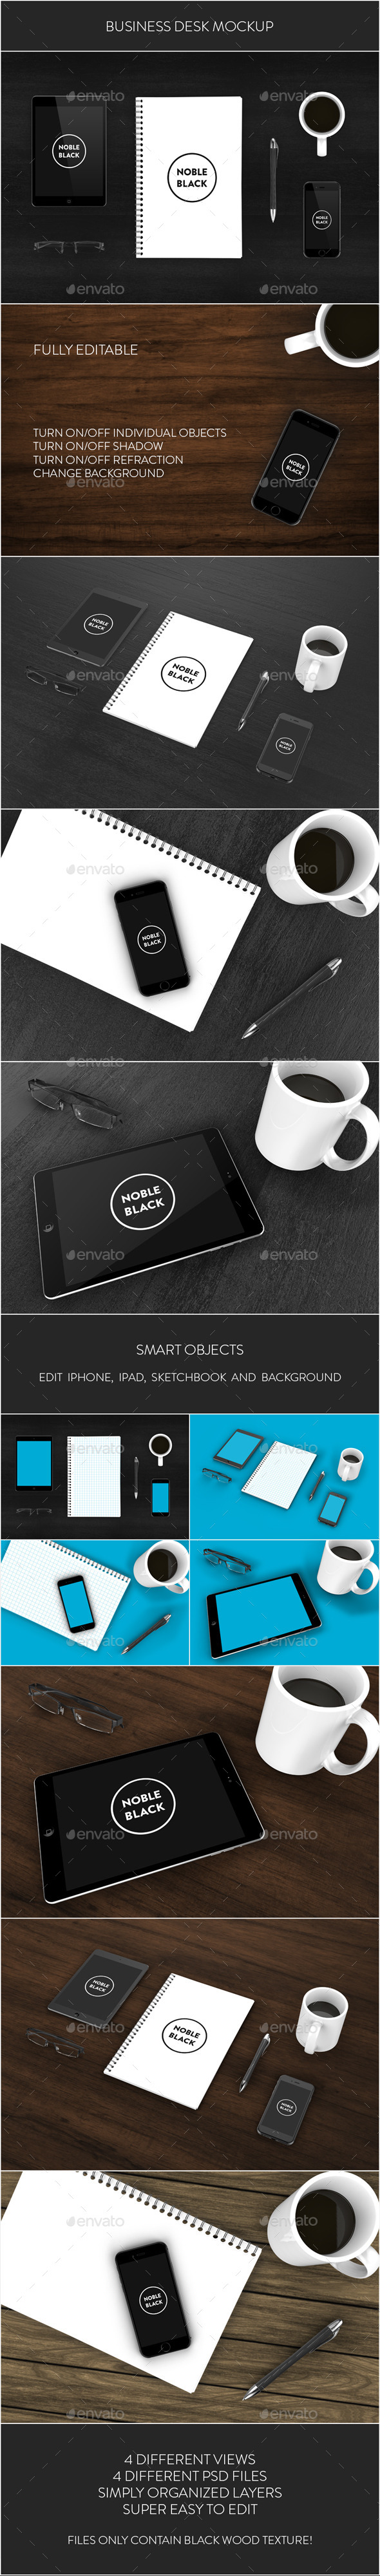 GraphicRiver Business Desk Mockup 8850590